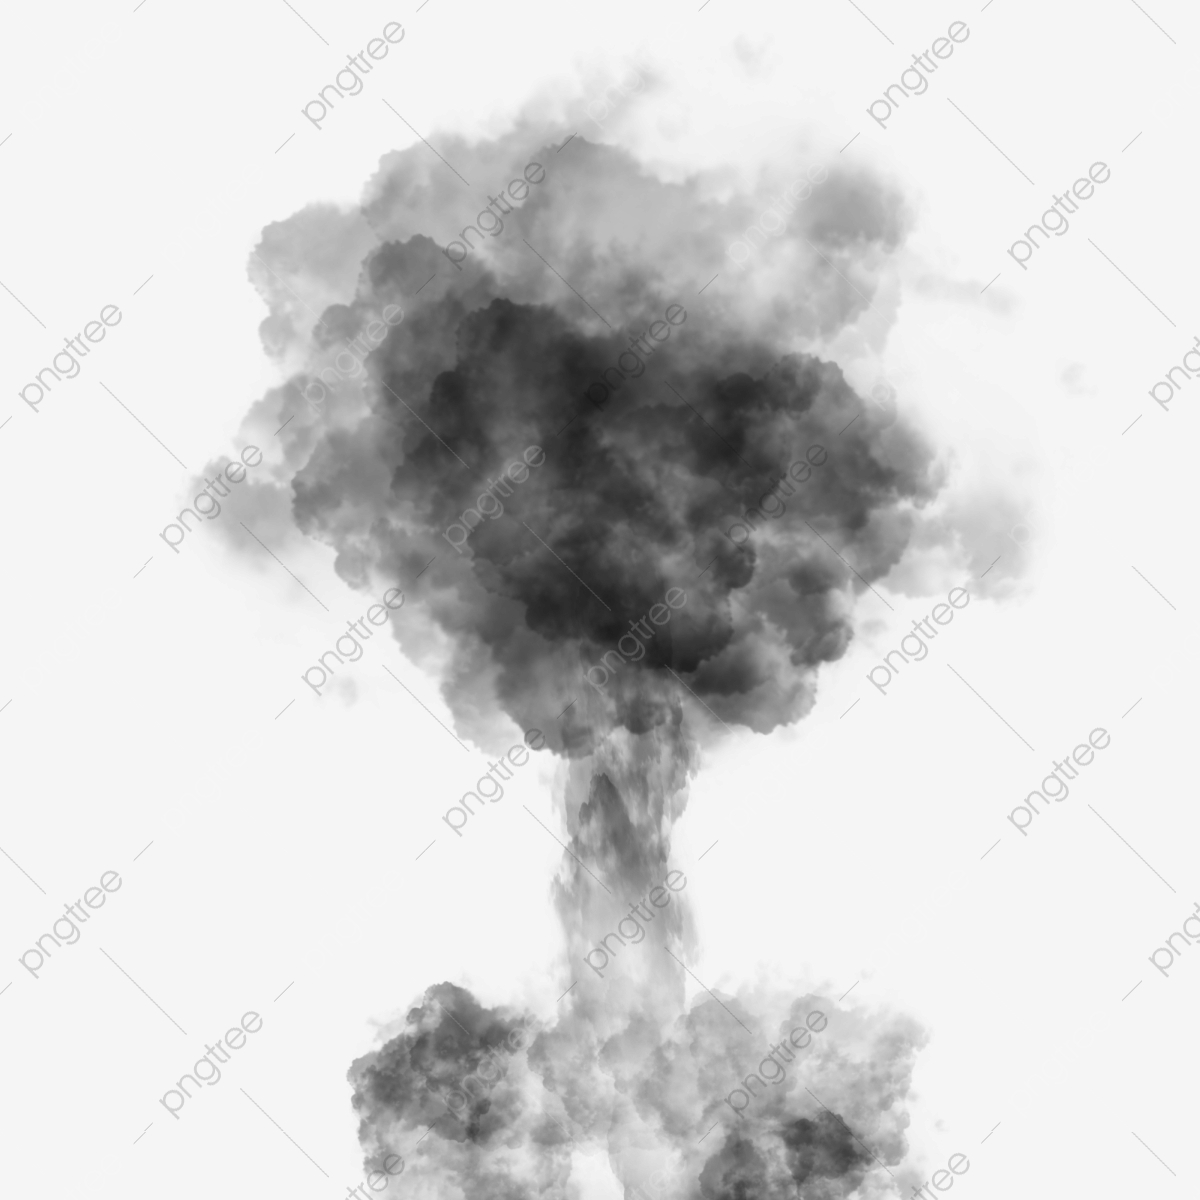 Smoke explosion. Nuclear photography